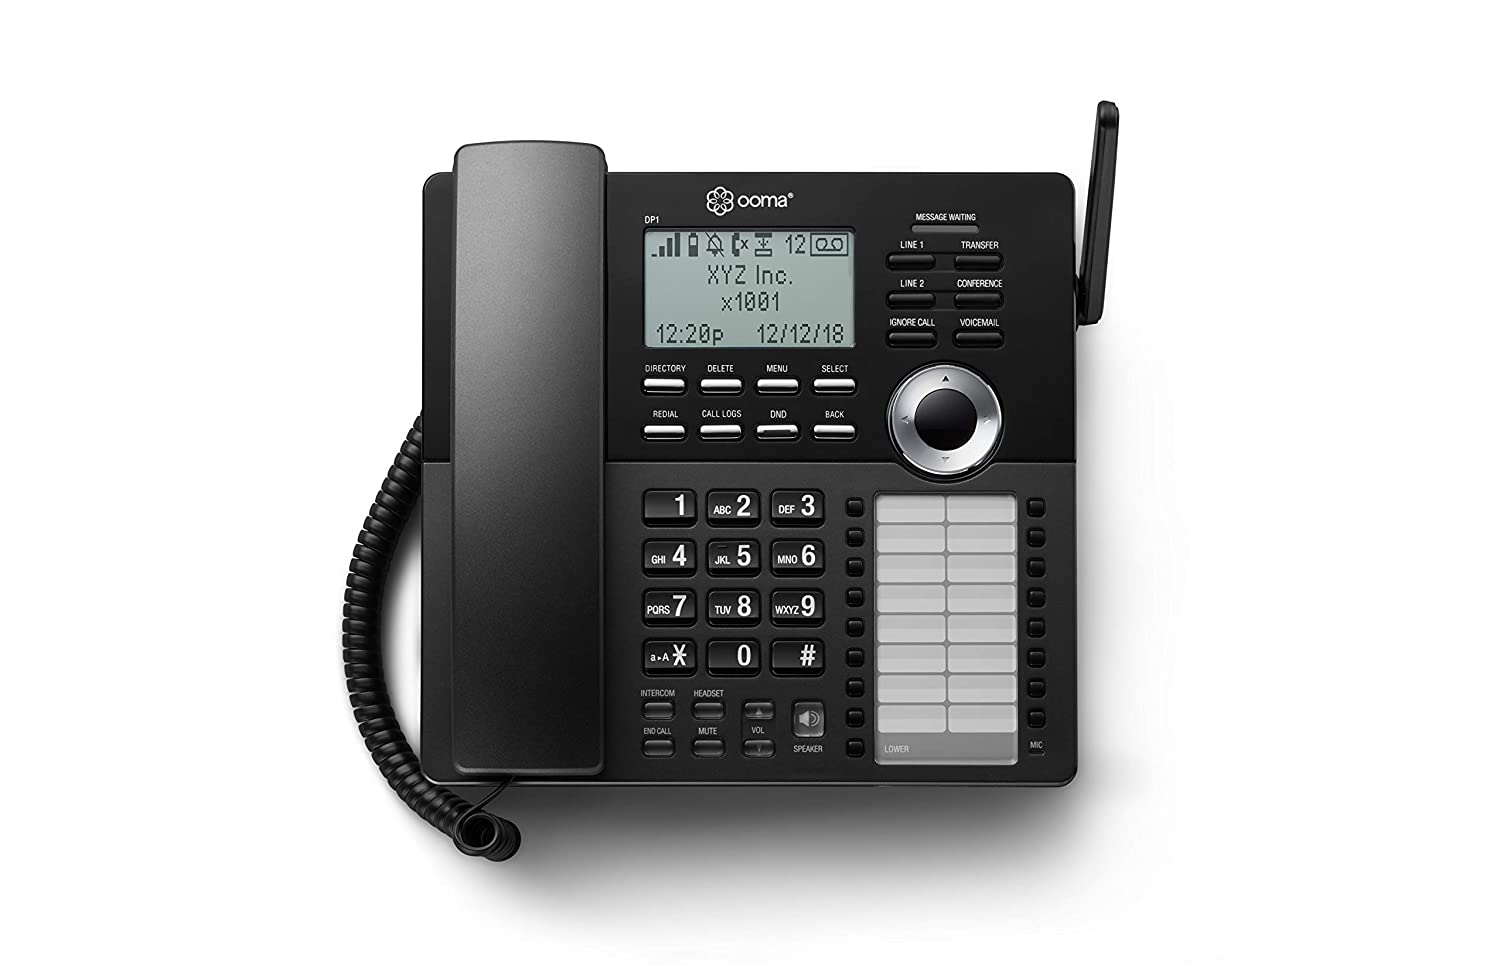 Ooma Office DP1-O Business Desk Phone –Connects wirelessly to Ooma Office base station. Works with Ooma Office cloud-based VoIP phone service for small business.